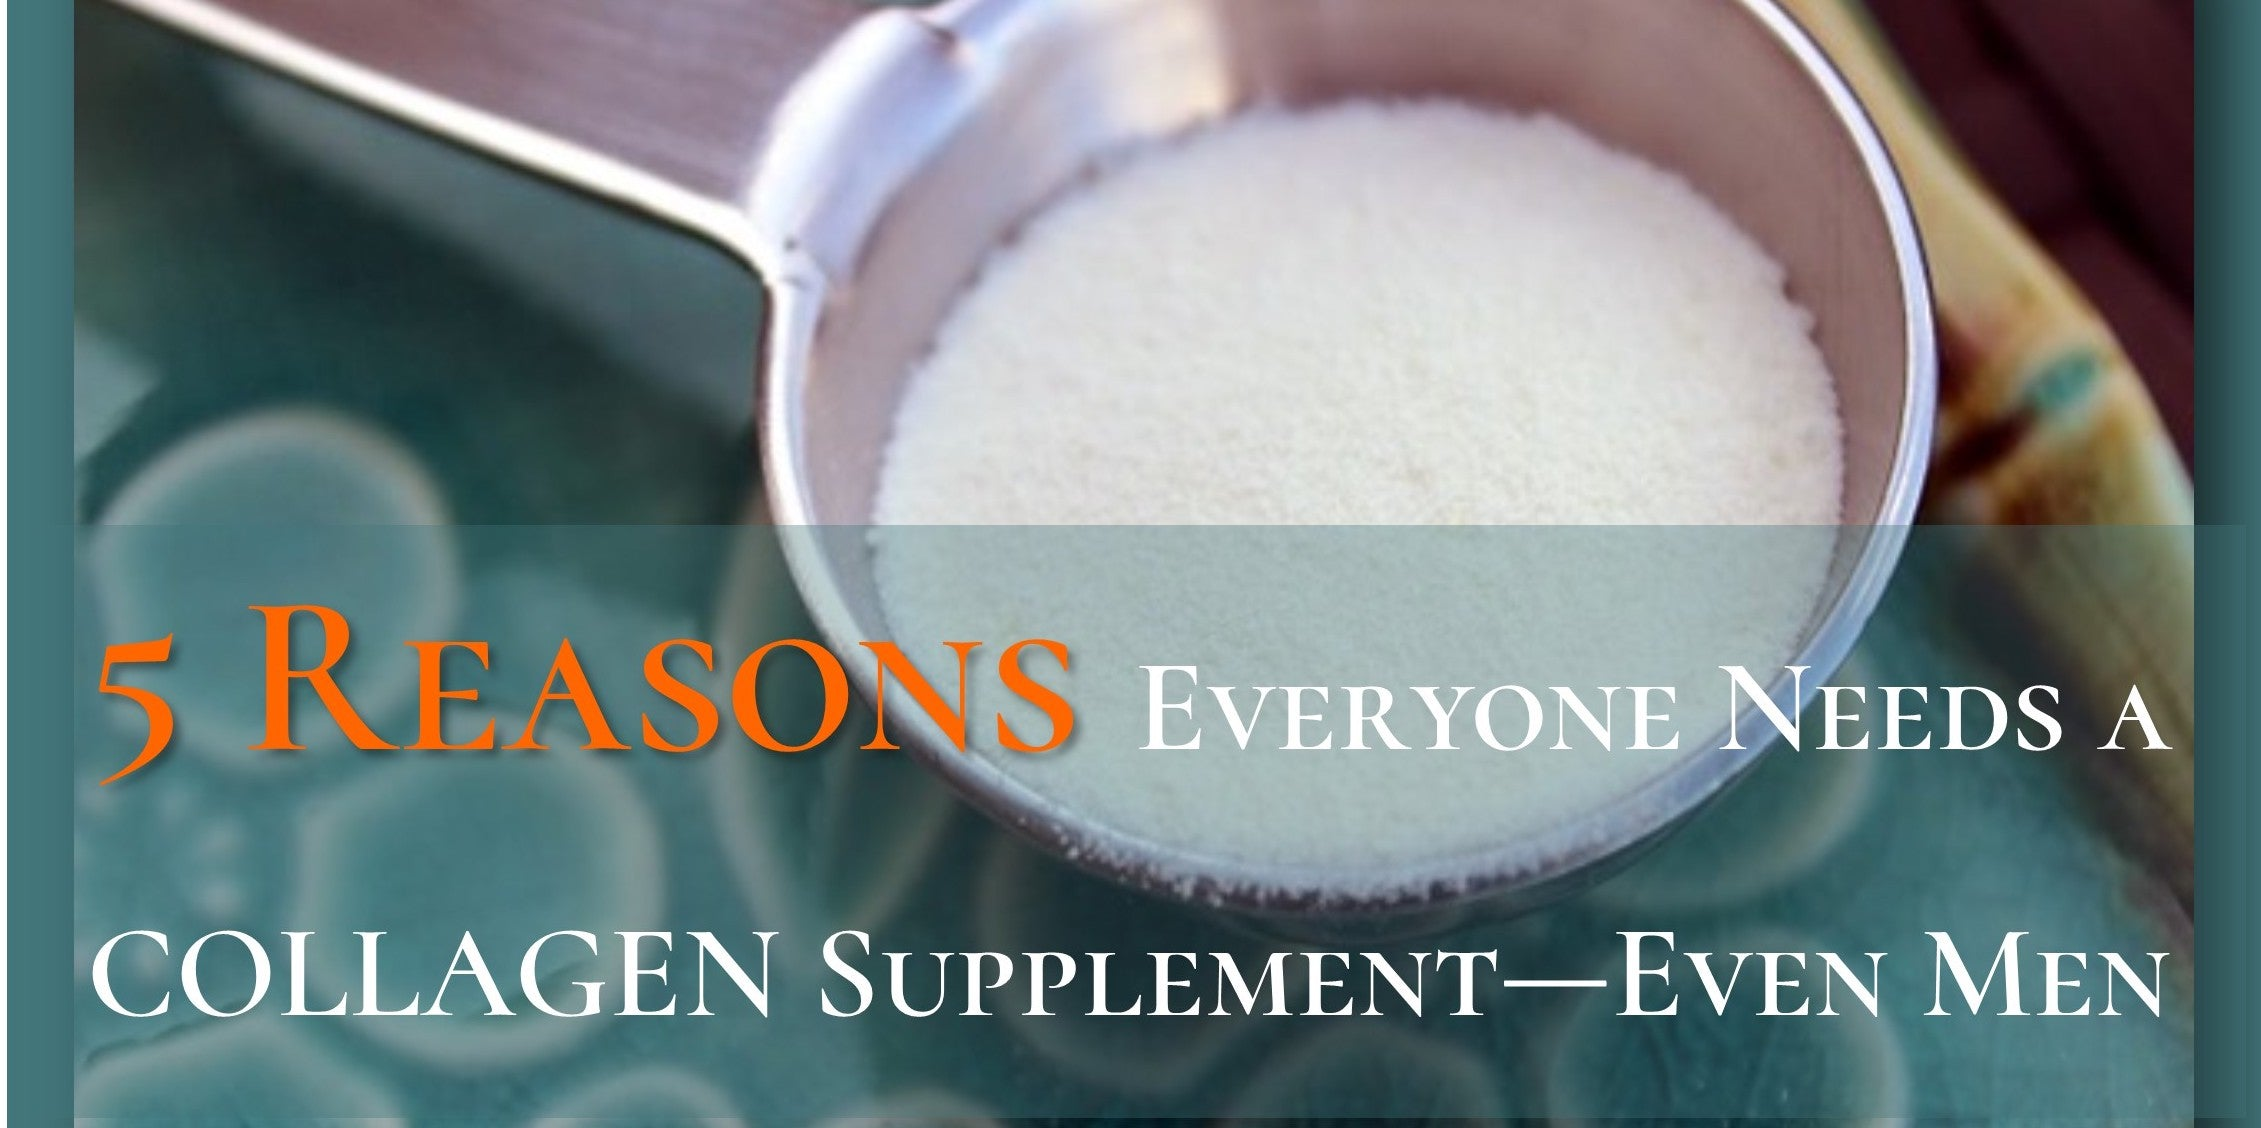 Julie Lindh 5 Reasons Everyone Needs a Collagen Supplement—Even Men